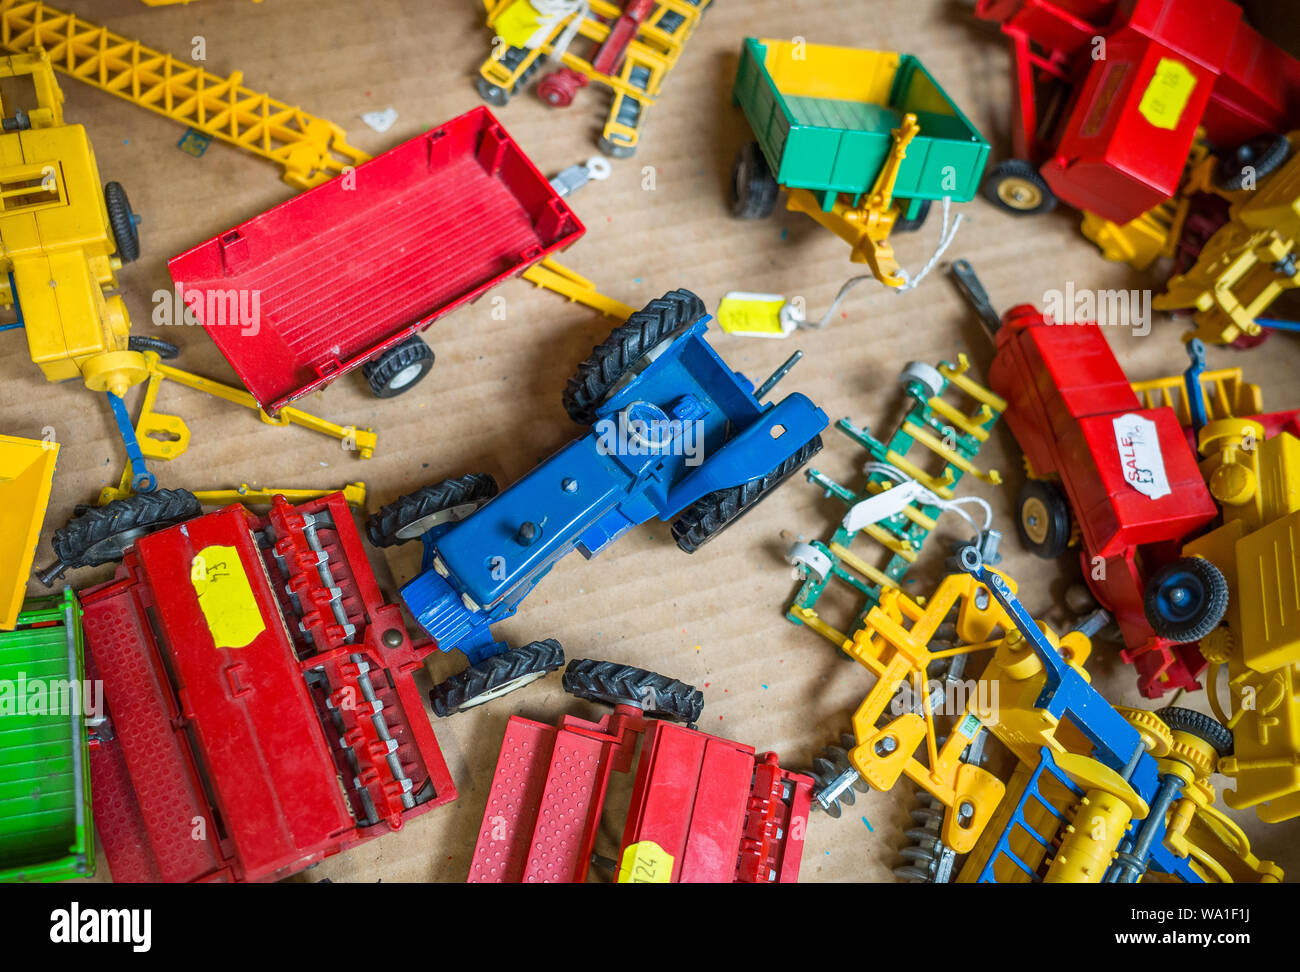 Old diecast farm vehicles for sale in a box. Stock Photo